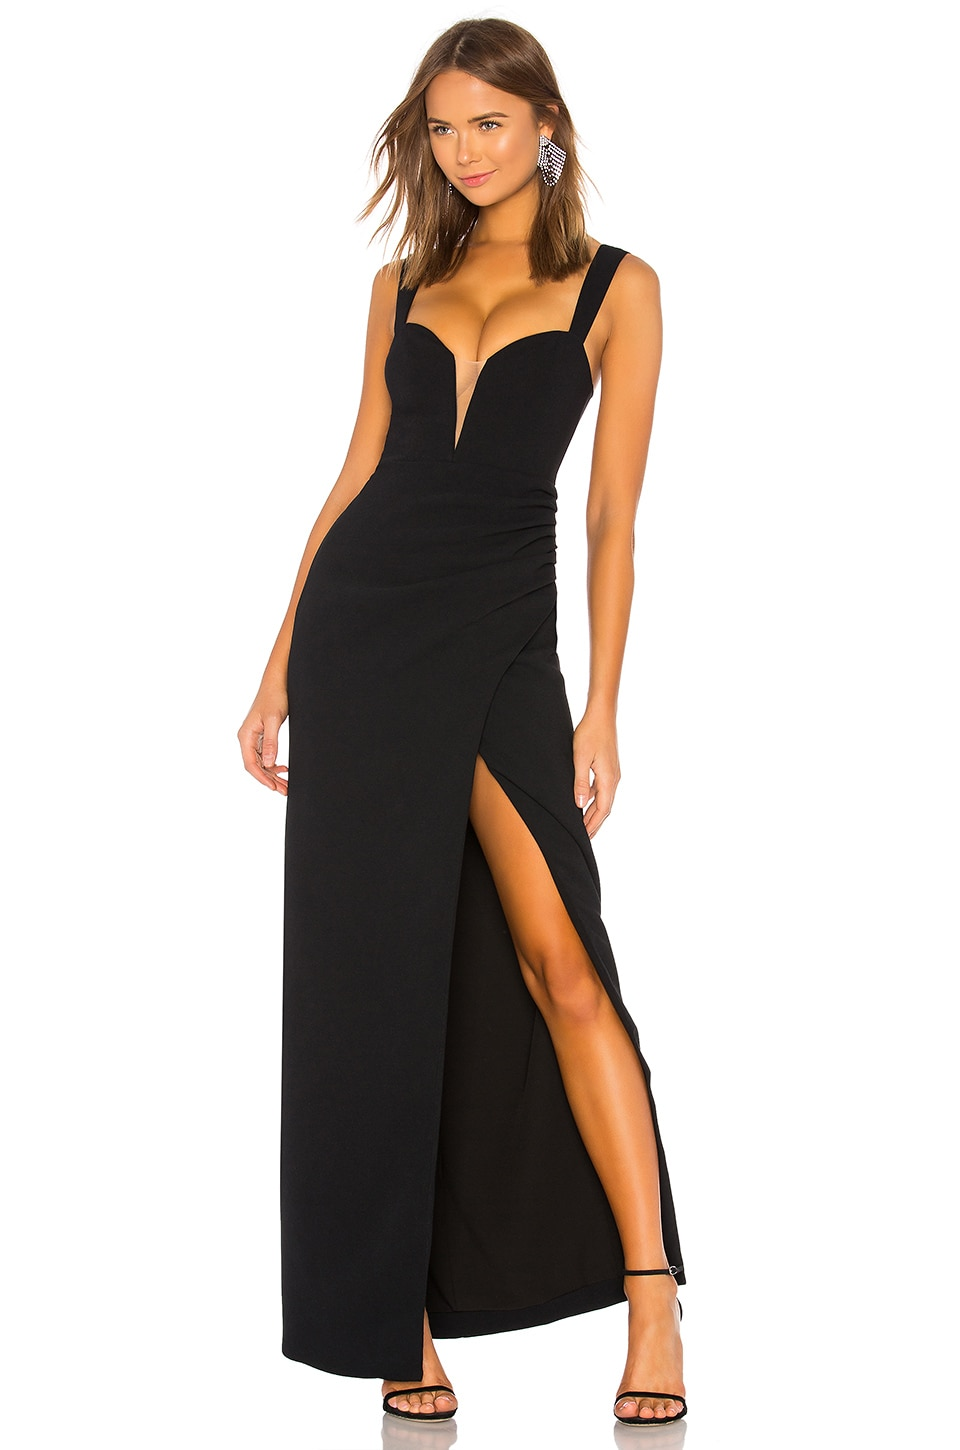 Lovers + Friends Dolores Gown in Black